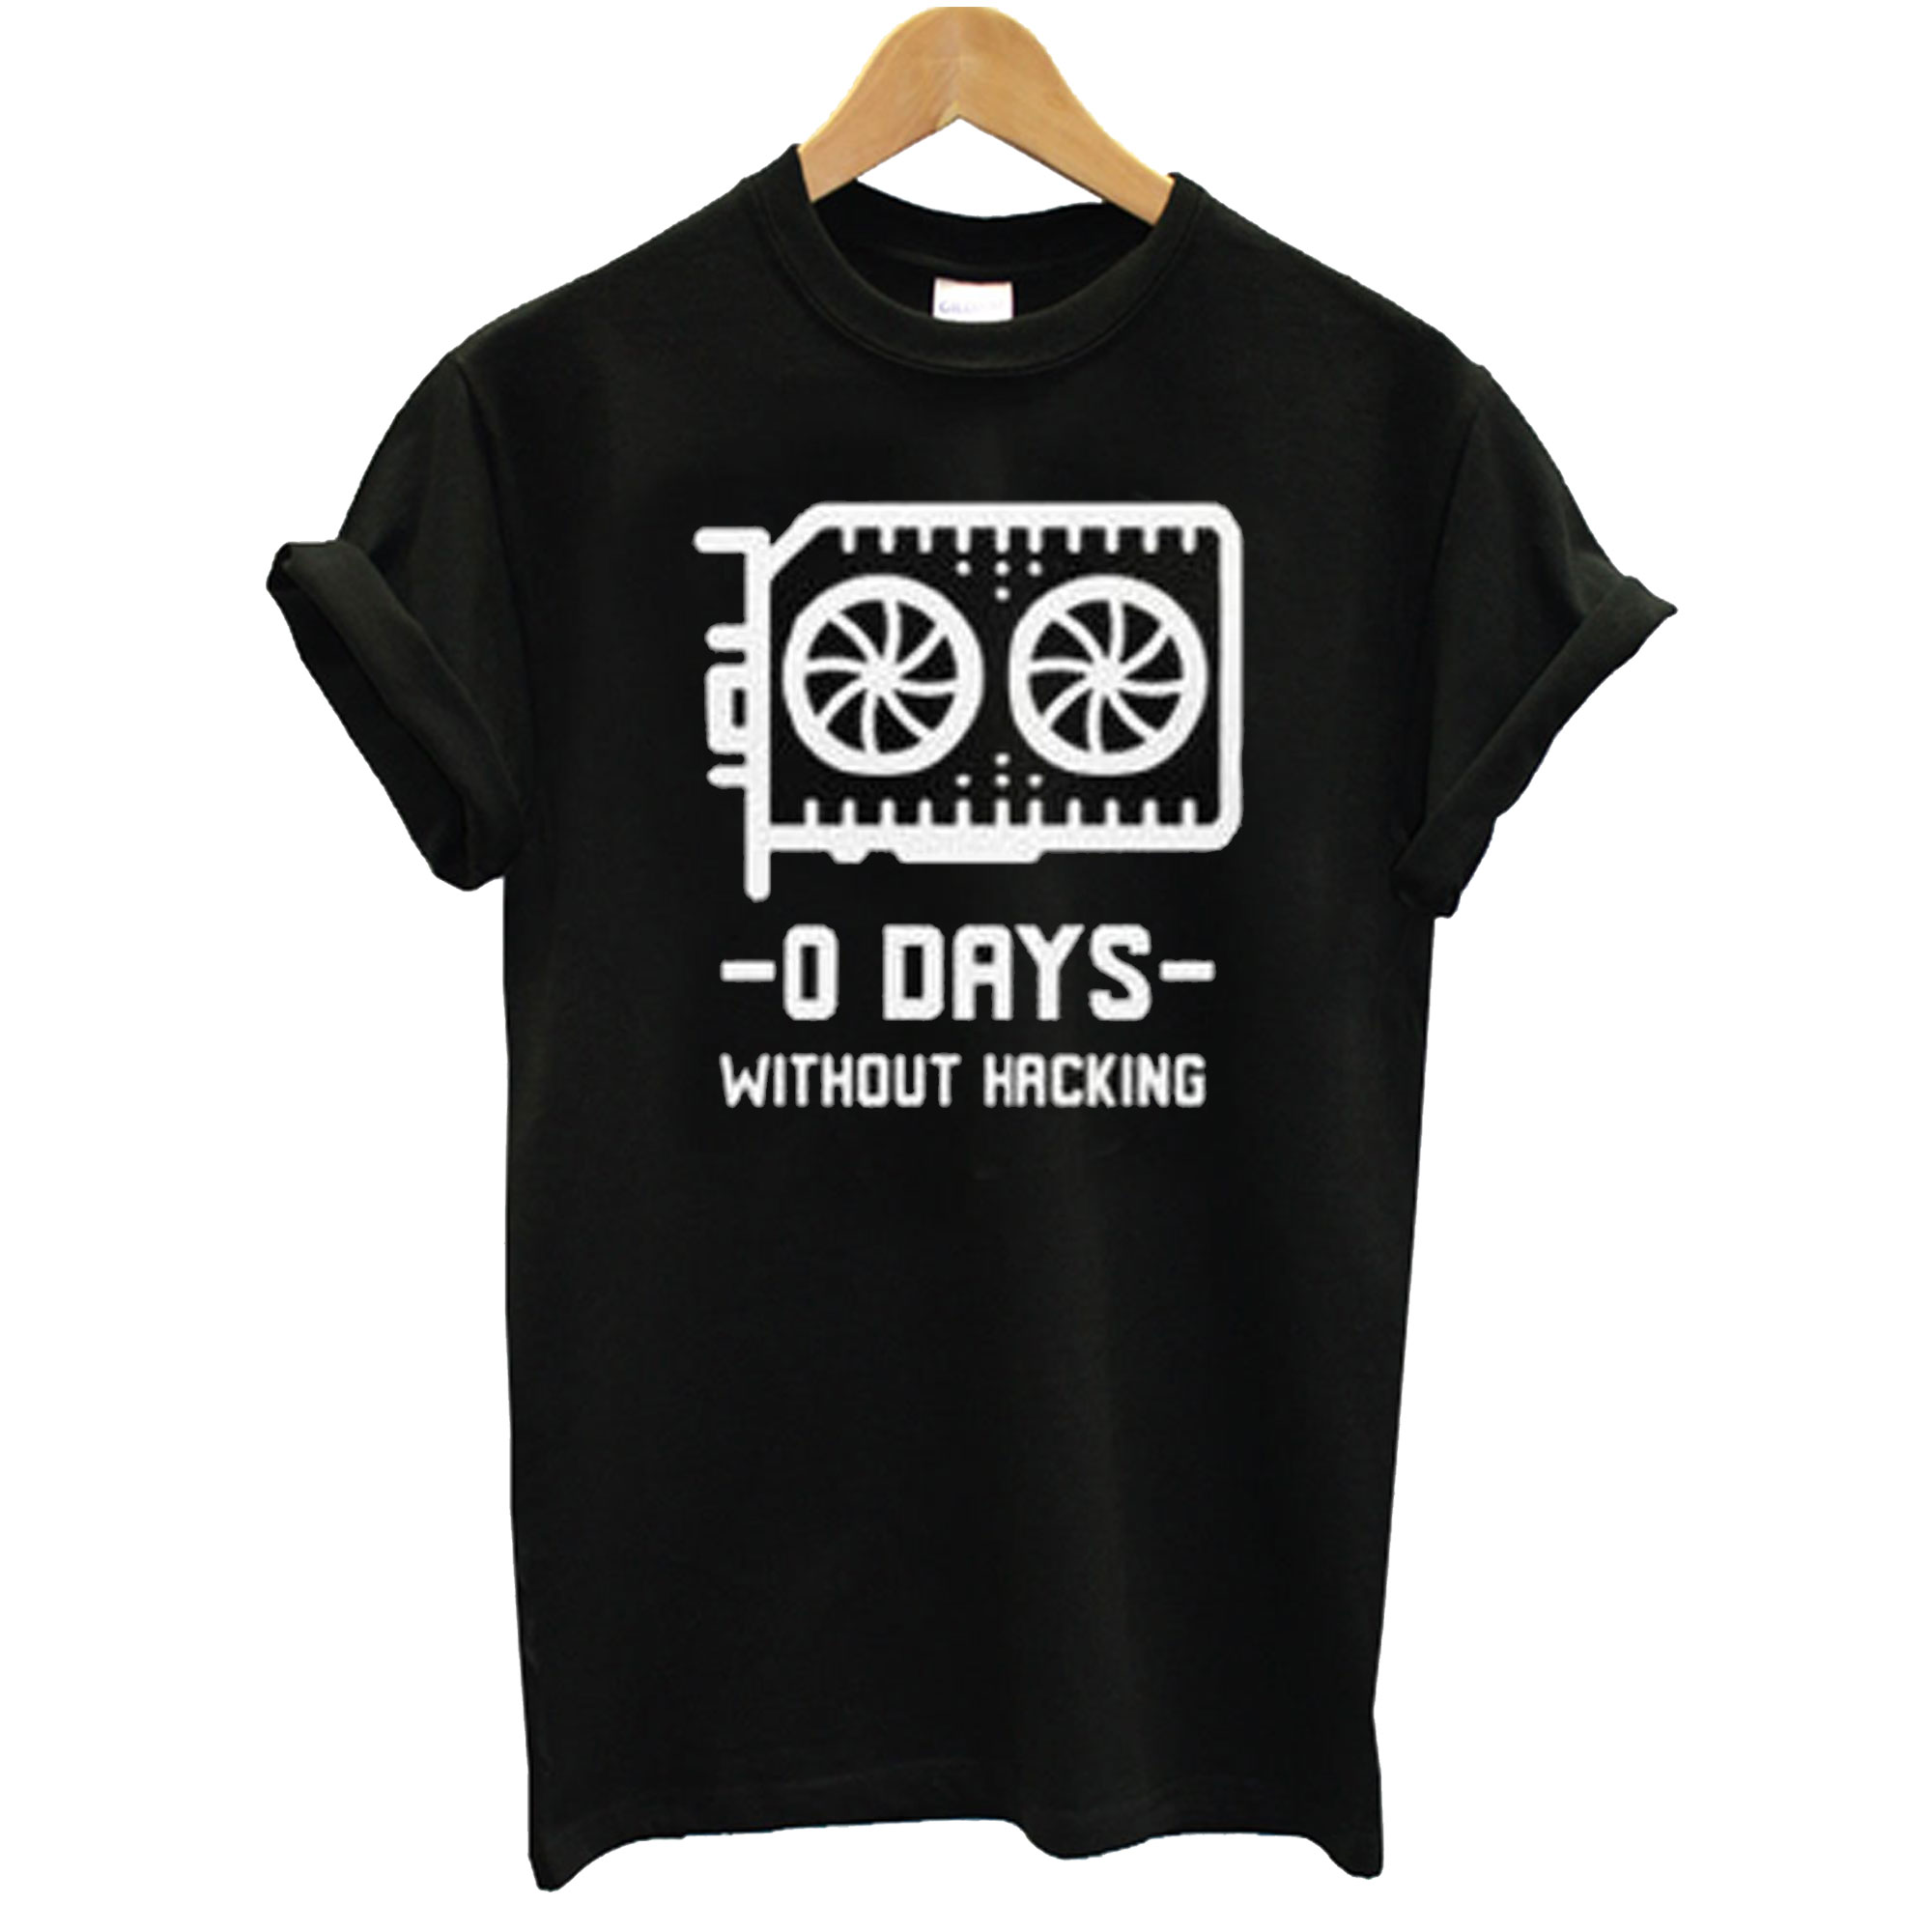 0 Days Without Hacking T Shirt